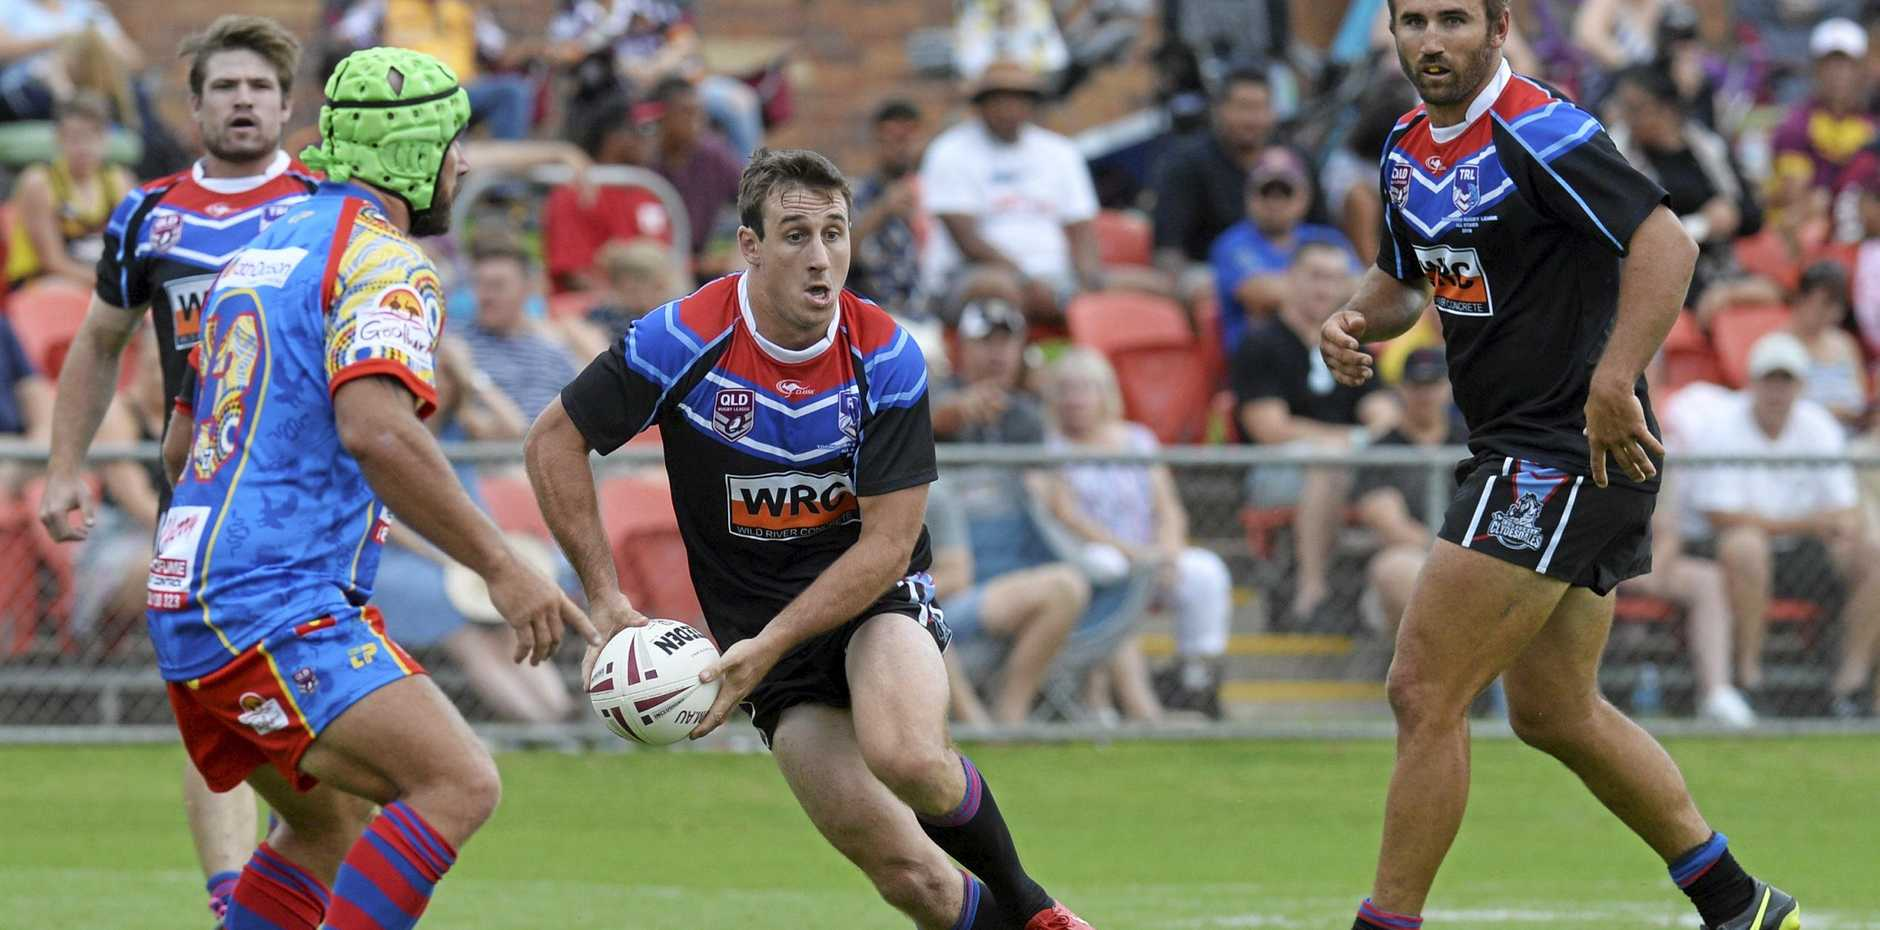 TRL All Stars player Matt Duggan against South West Queensland Emus in rugby league at Clive Berghofer Stadium last year.